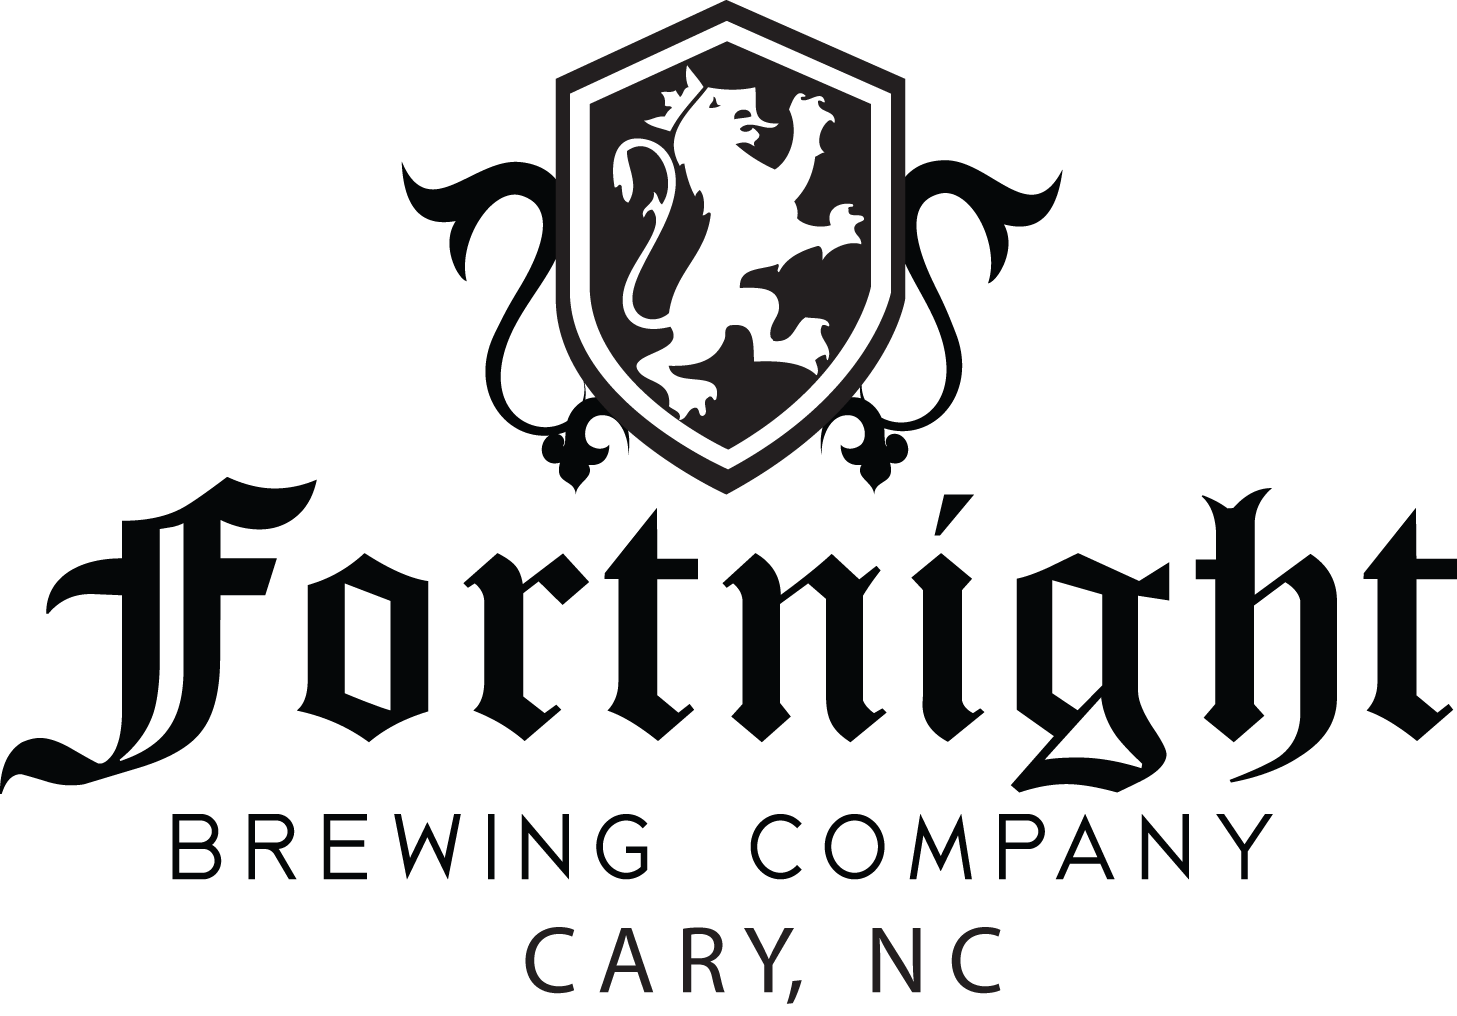 Fortnightlogo_stacked_bw_cary.png